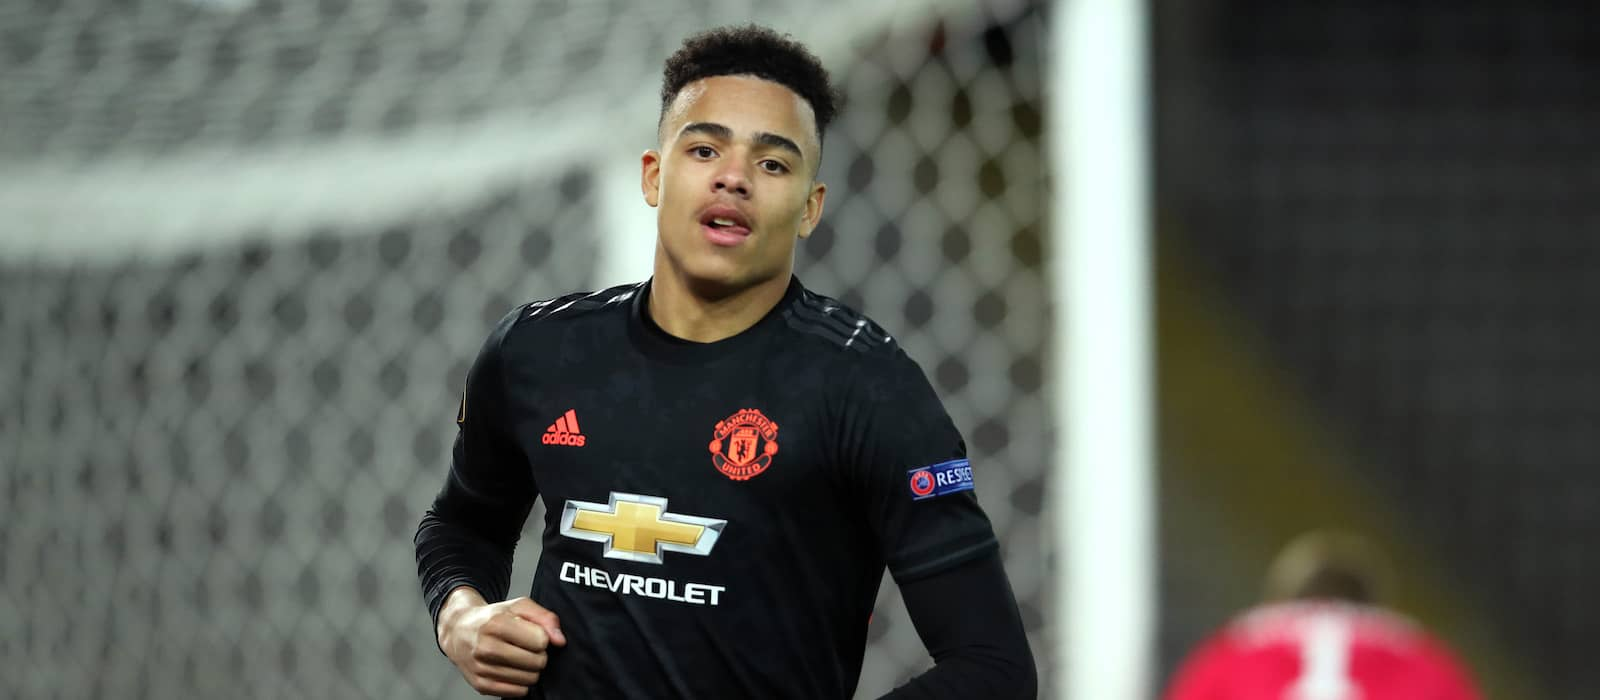 Mason Greenwood's goal average close to Robin Van Persie's